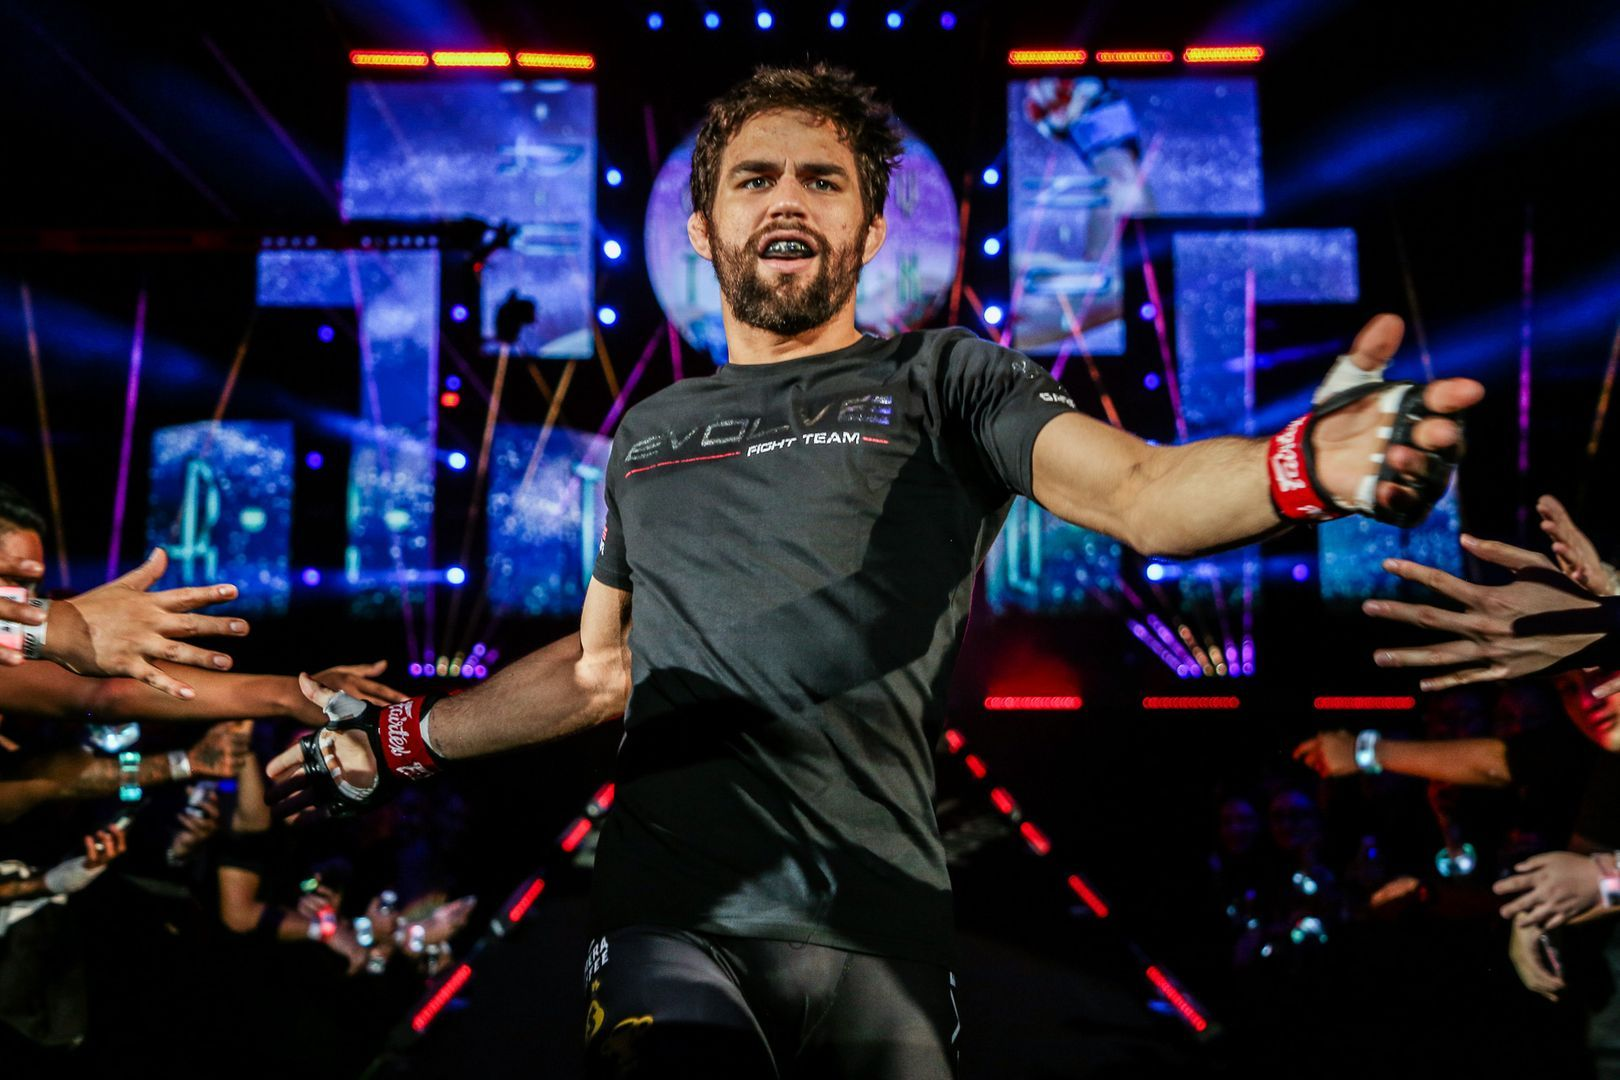 Multi-time Brazilian Jiu-Jitsu World Champion Garry Tonon walks to the circle for his mixed martial arts match